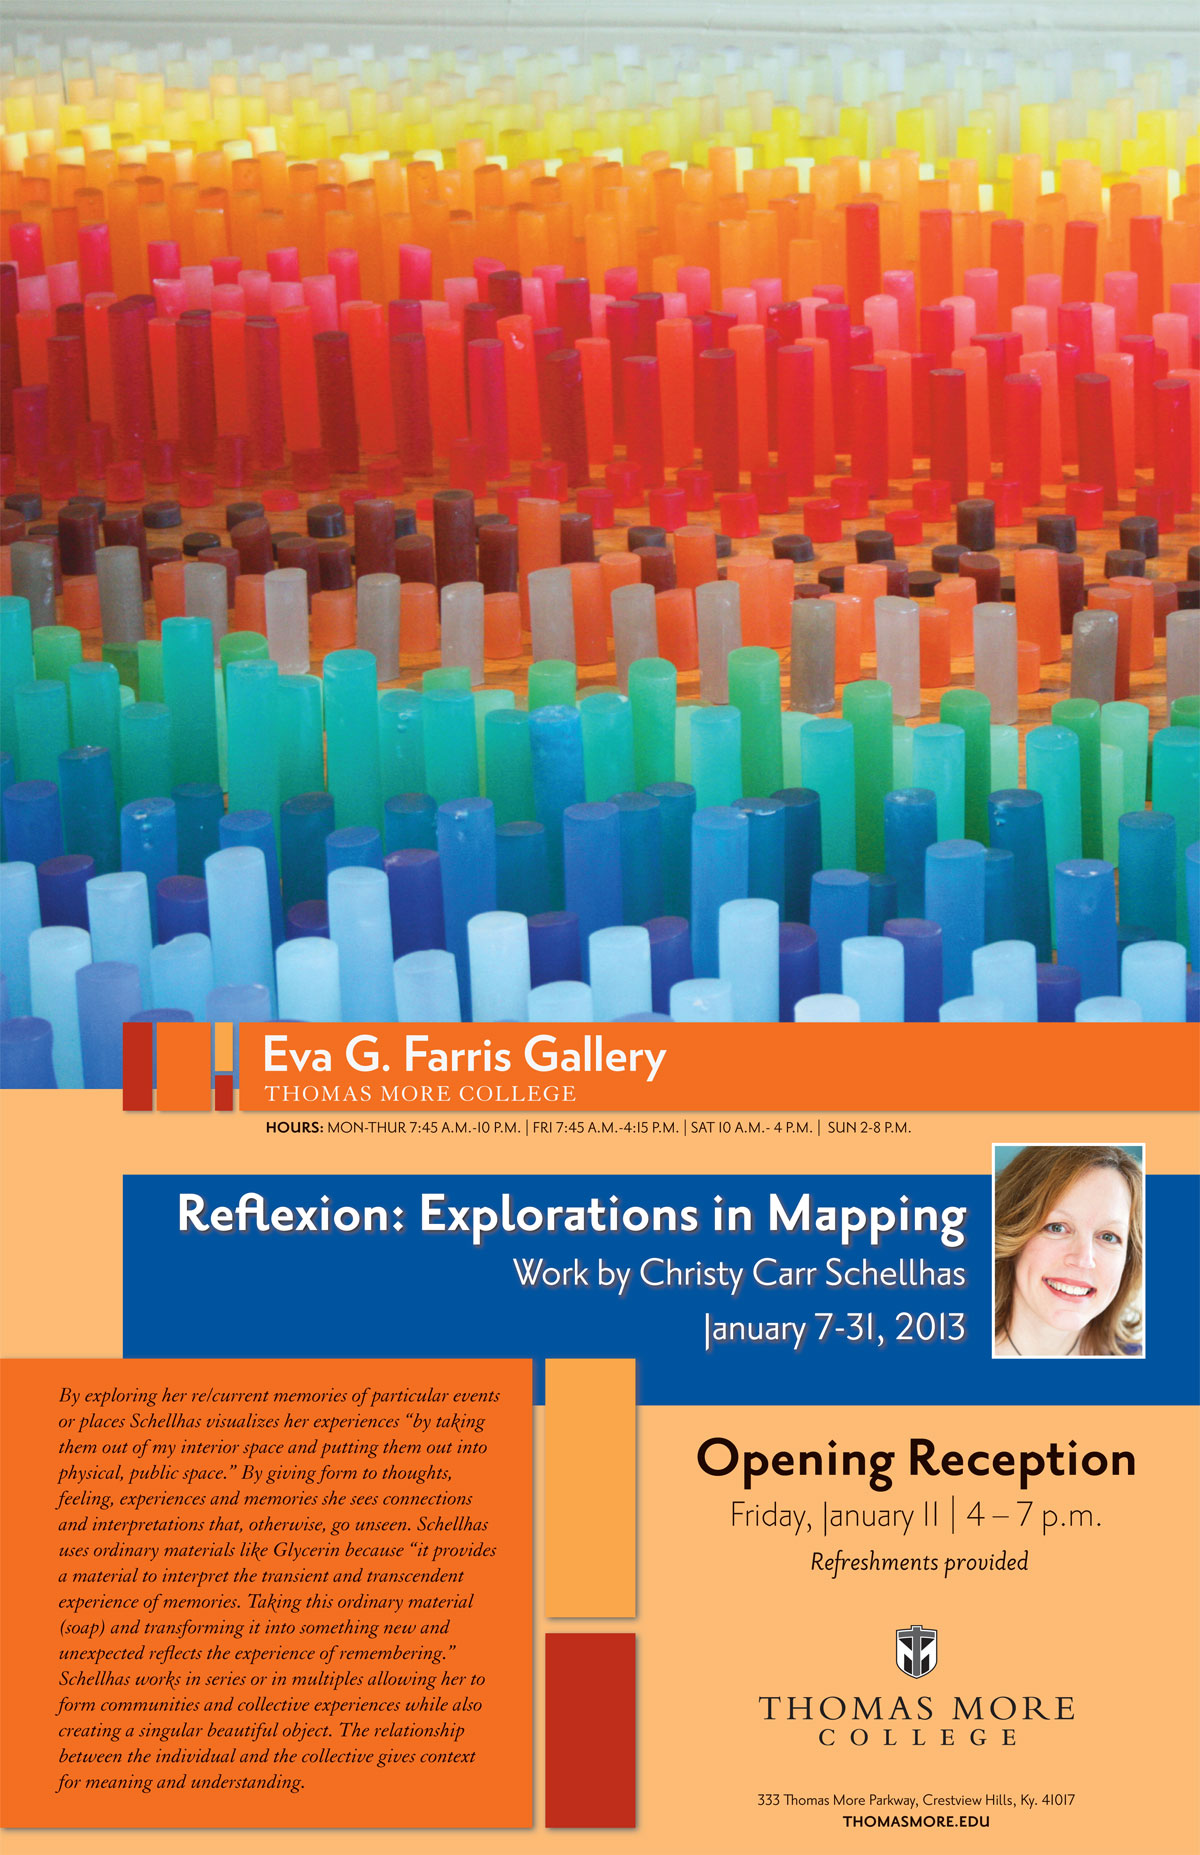 Reflexion: Explorations in Mapping - Work by Christy Carr Schellhas - January 7-31, 2013